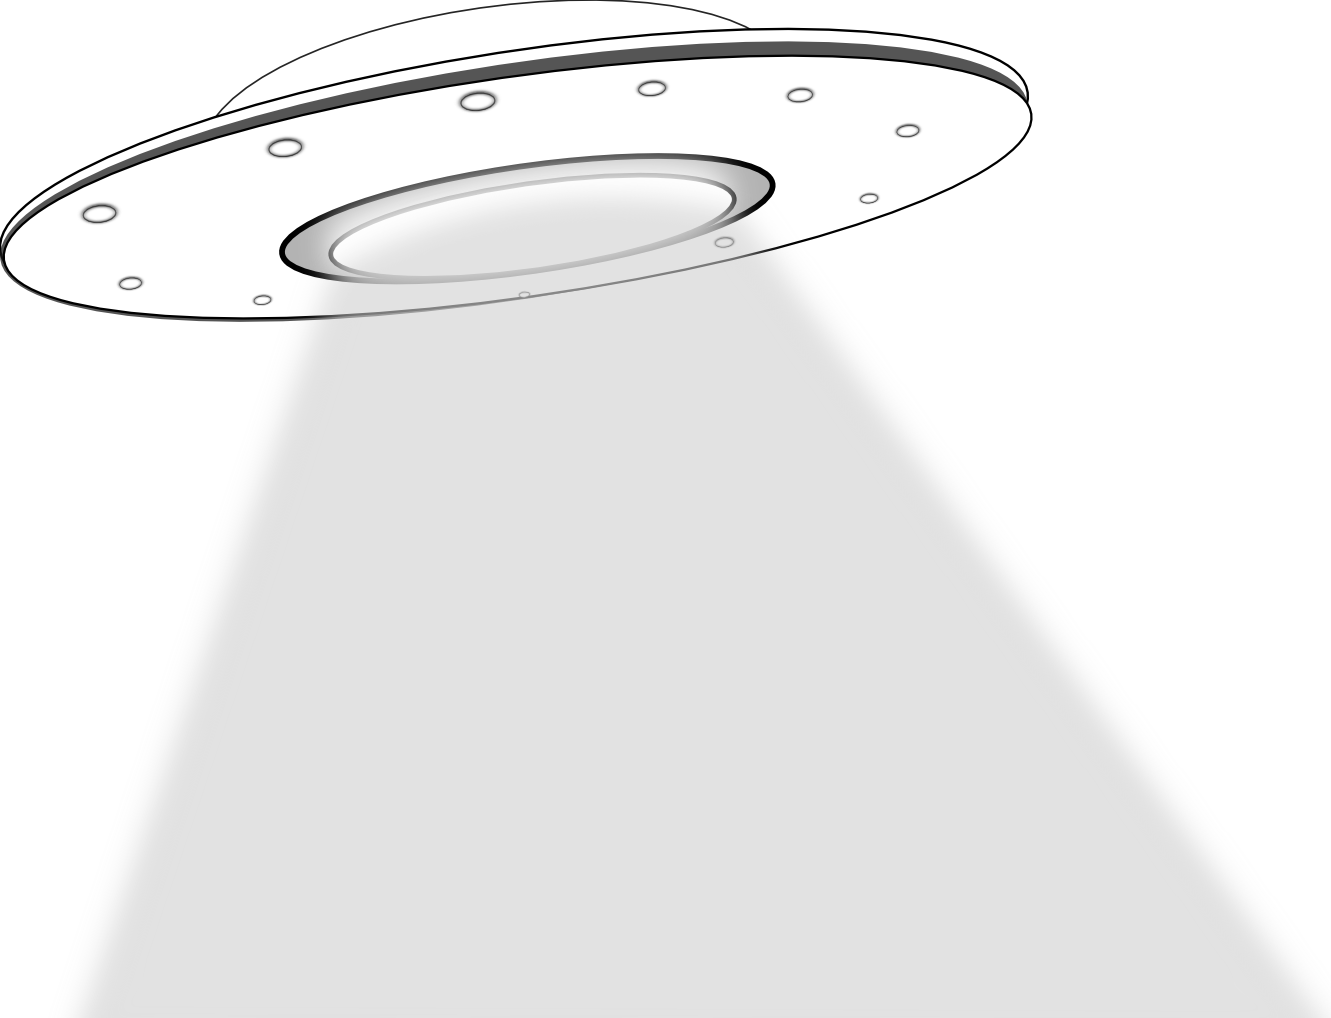 Ufo beam png. Collection of clipart